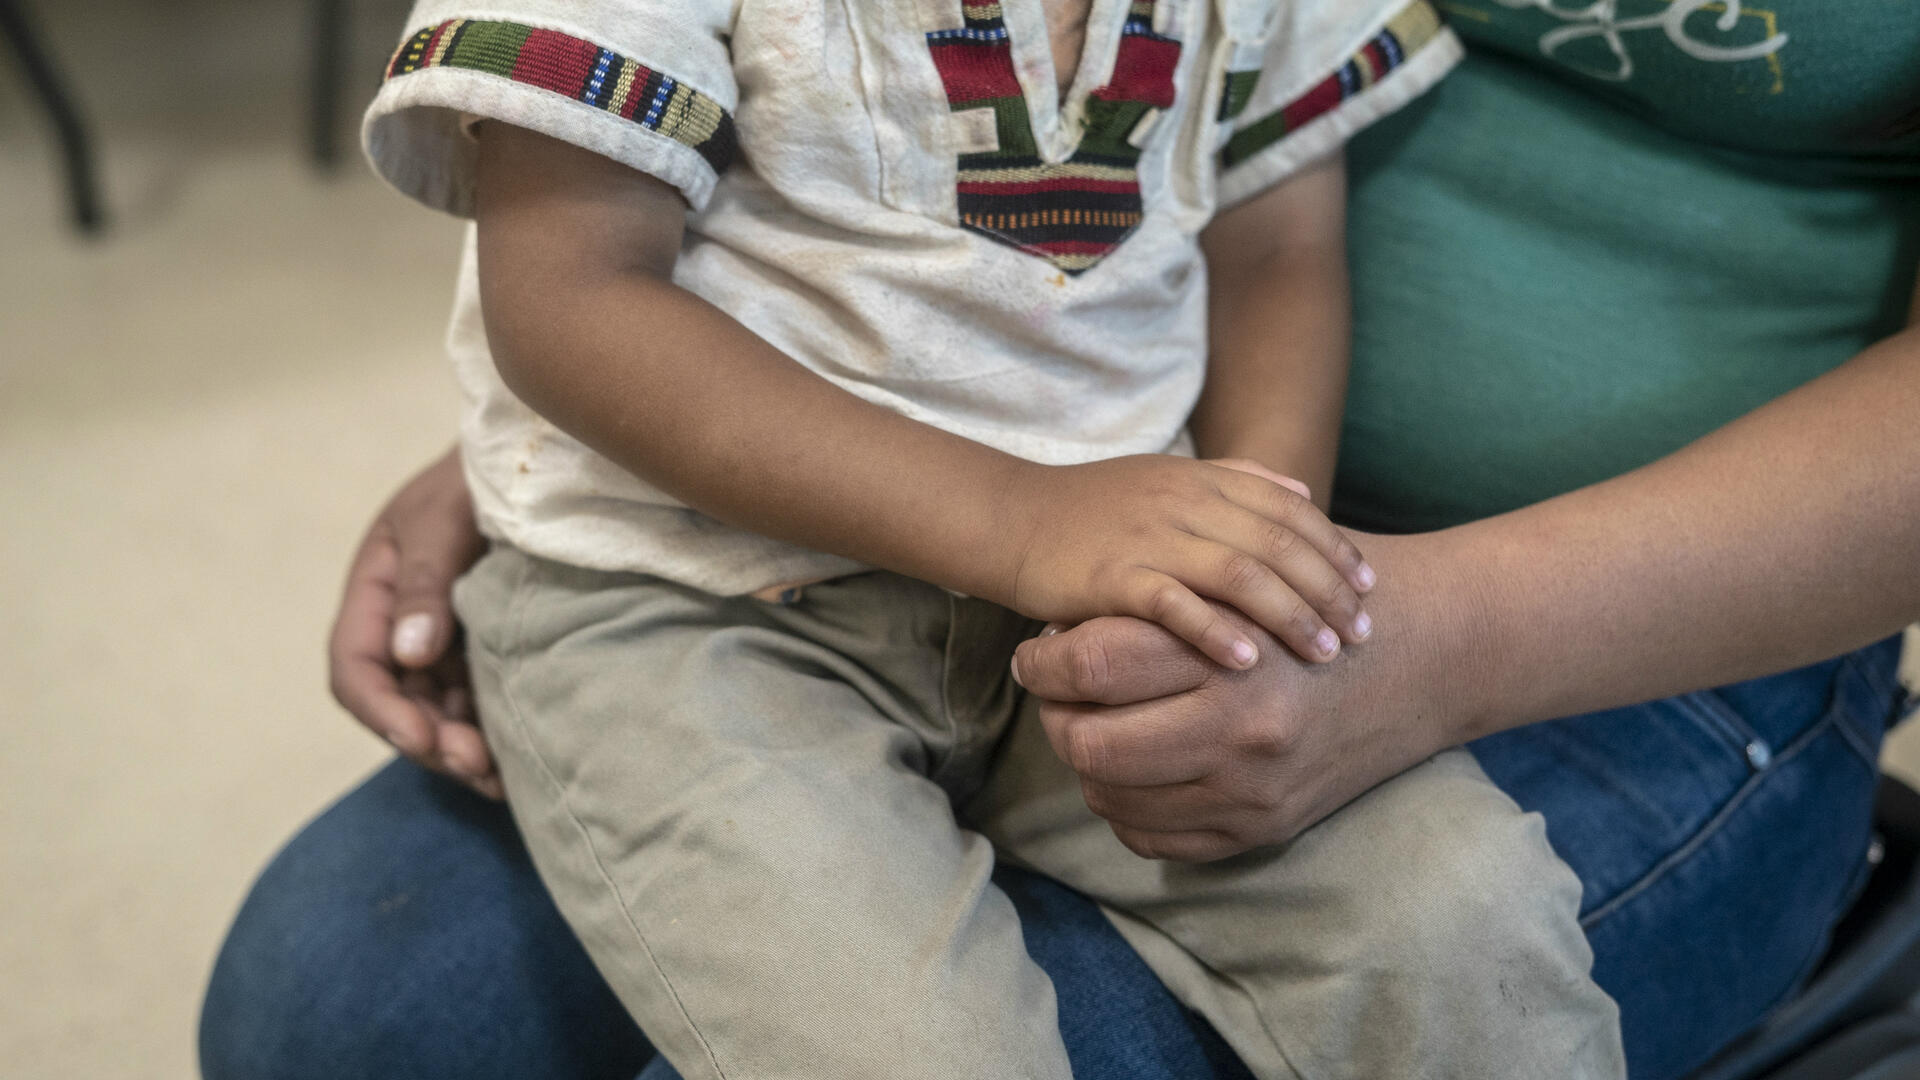 A Central American child sits on his mother's lap at an IRC day center for asylum seekers in Arizona